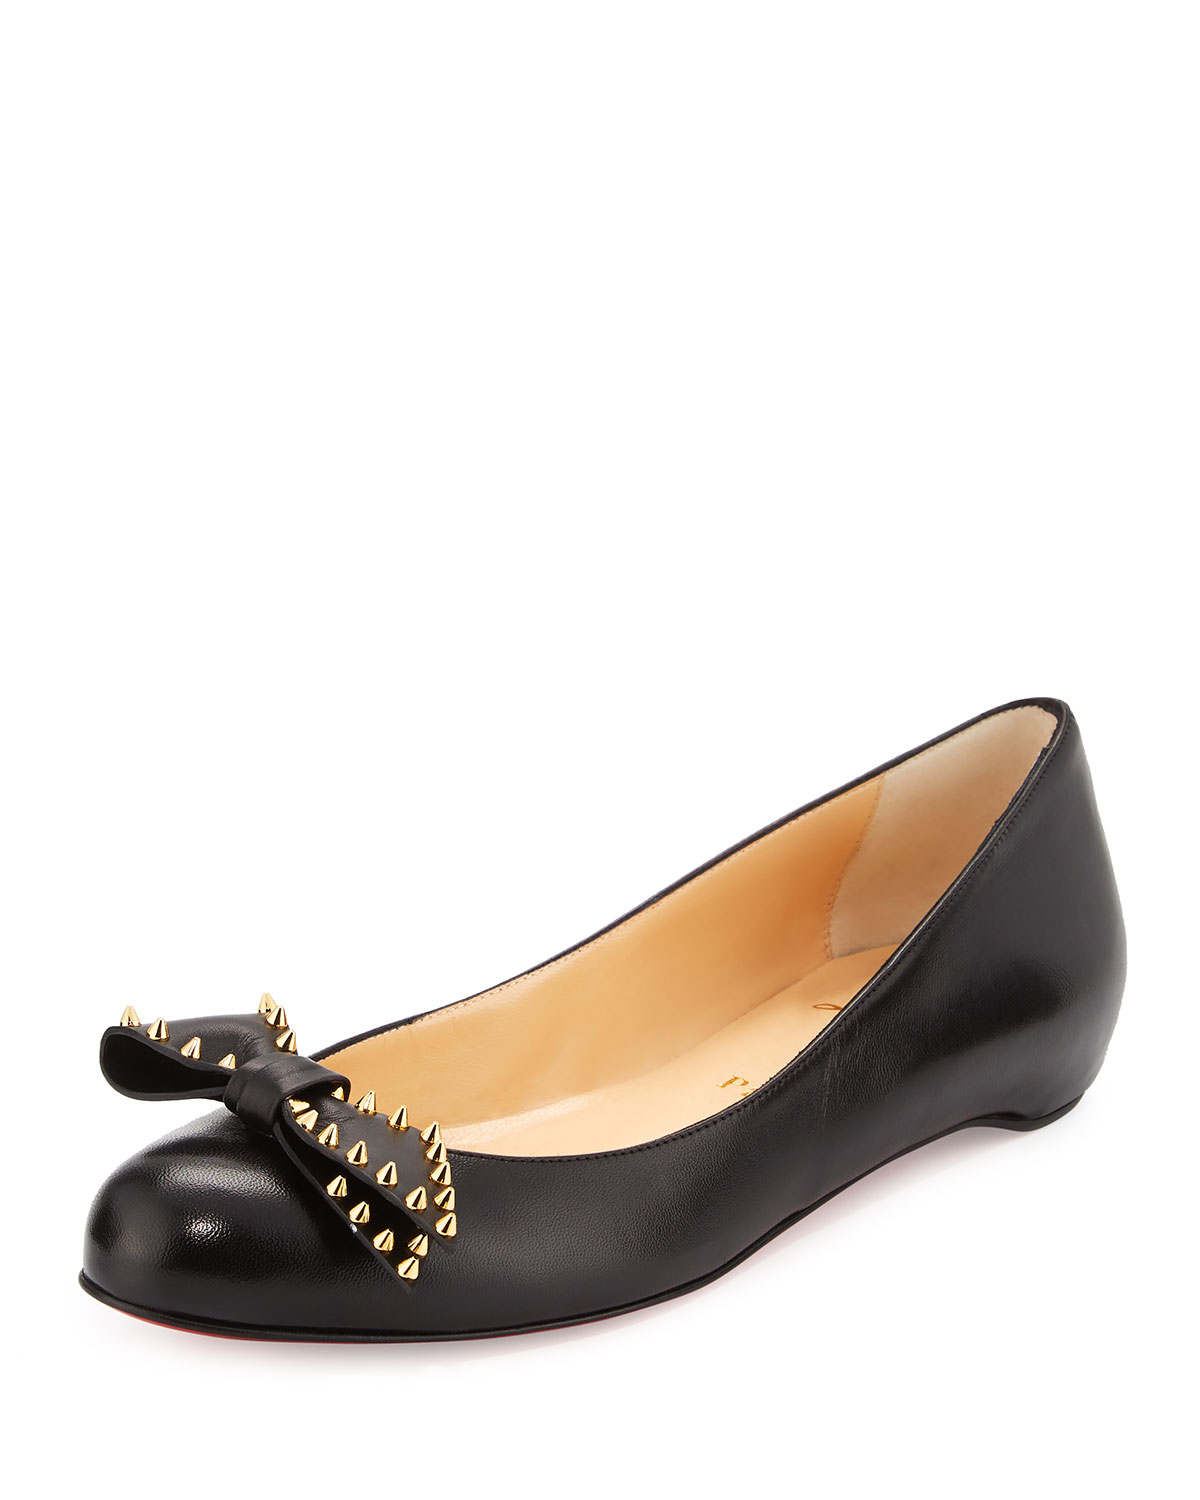 48fbf1cacb87 Lyst - Christian Louboutin Spike-bow Leather Red Sole Ballerina Flat ...